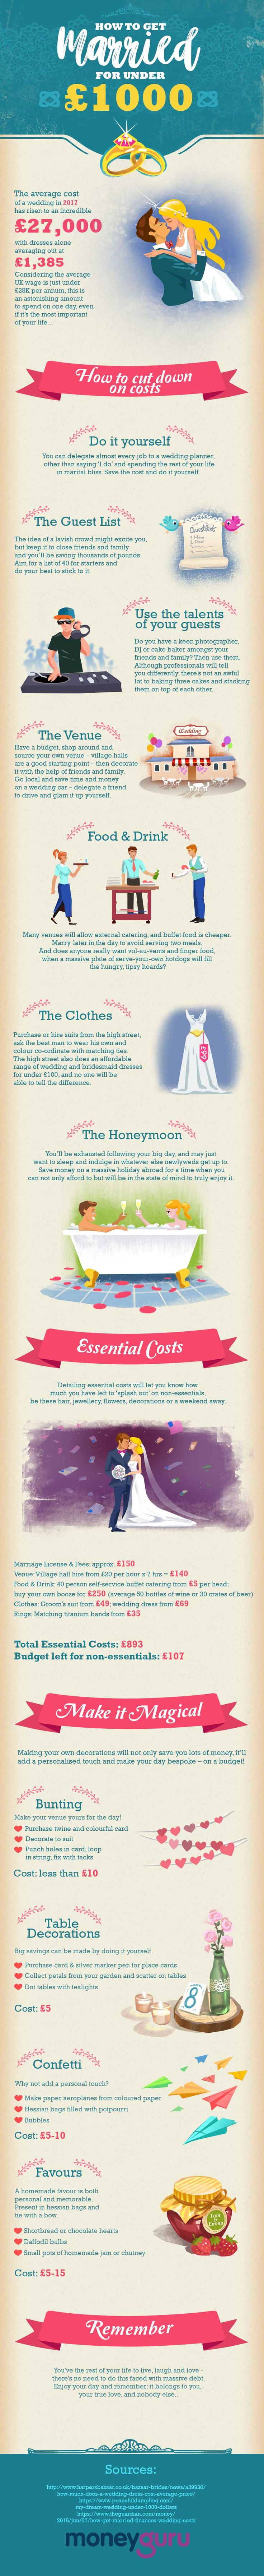 How to Get Married for Under £1000 (or $1,300 or So)